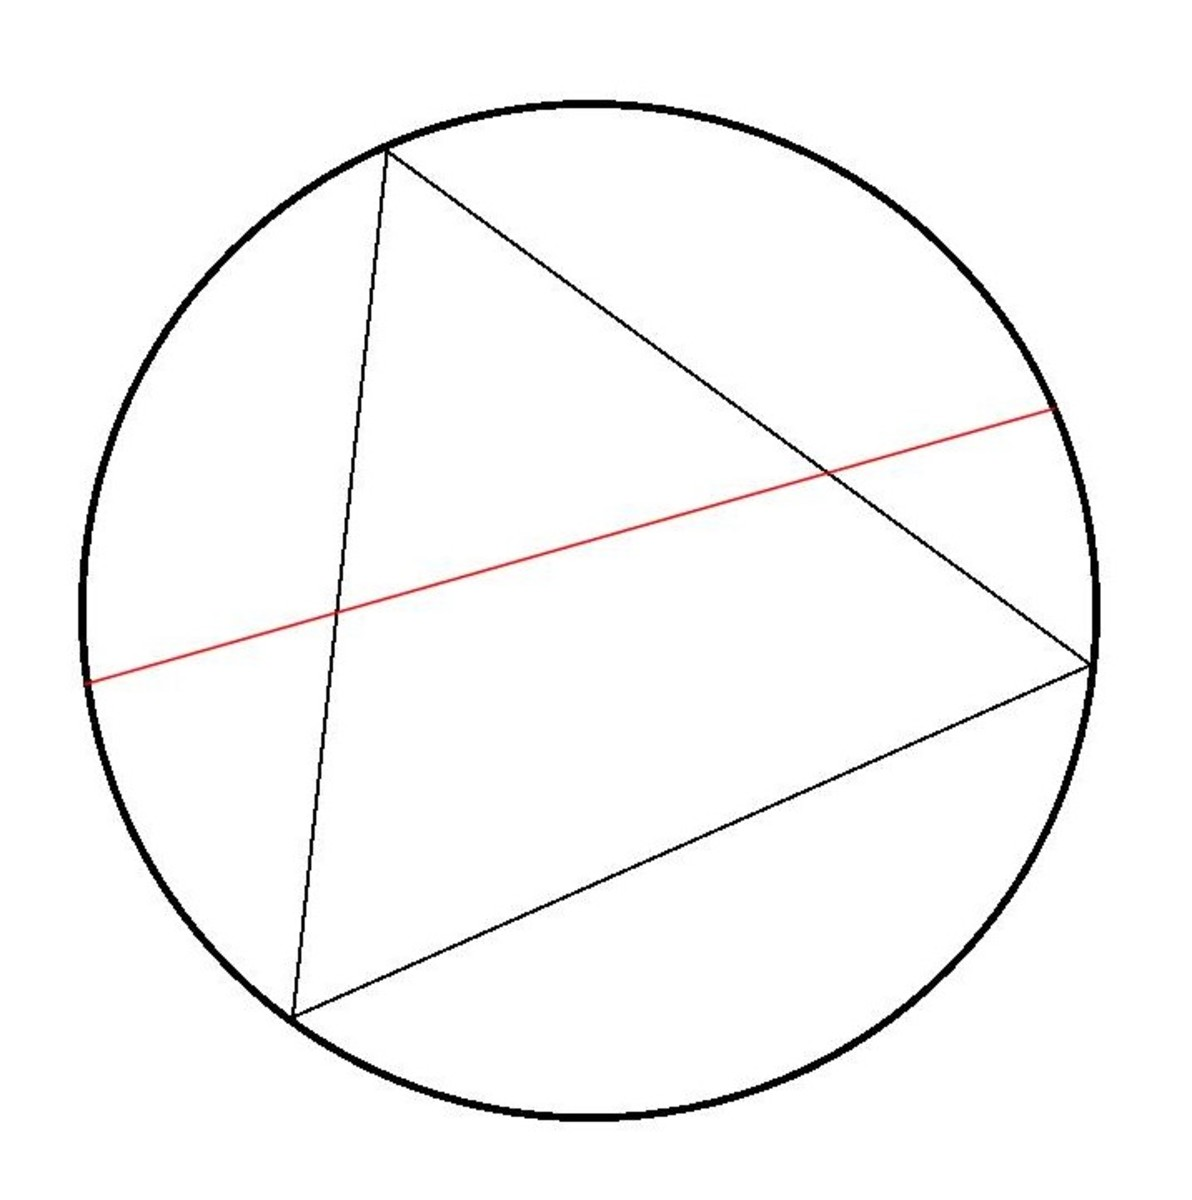 A Circle With an Inscribed Equilateral Triangle and a Chord